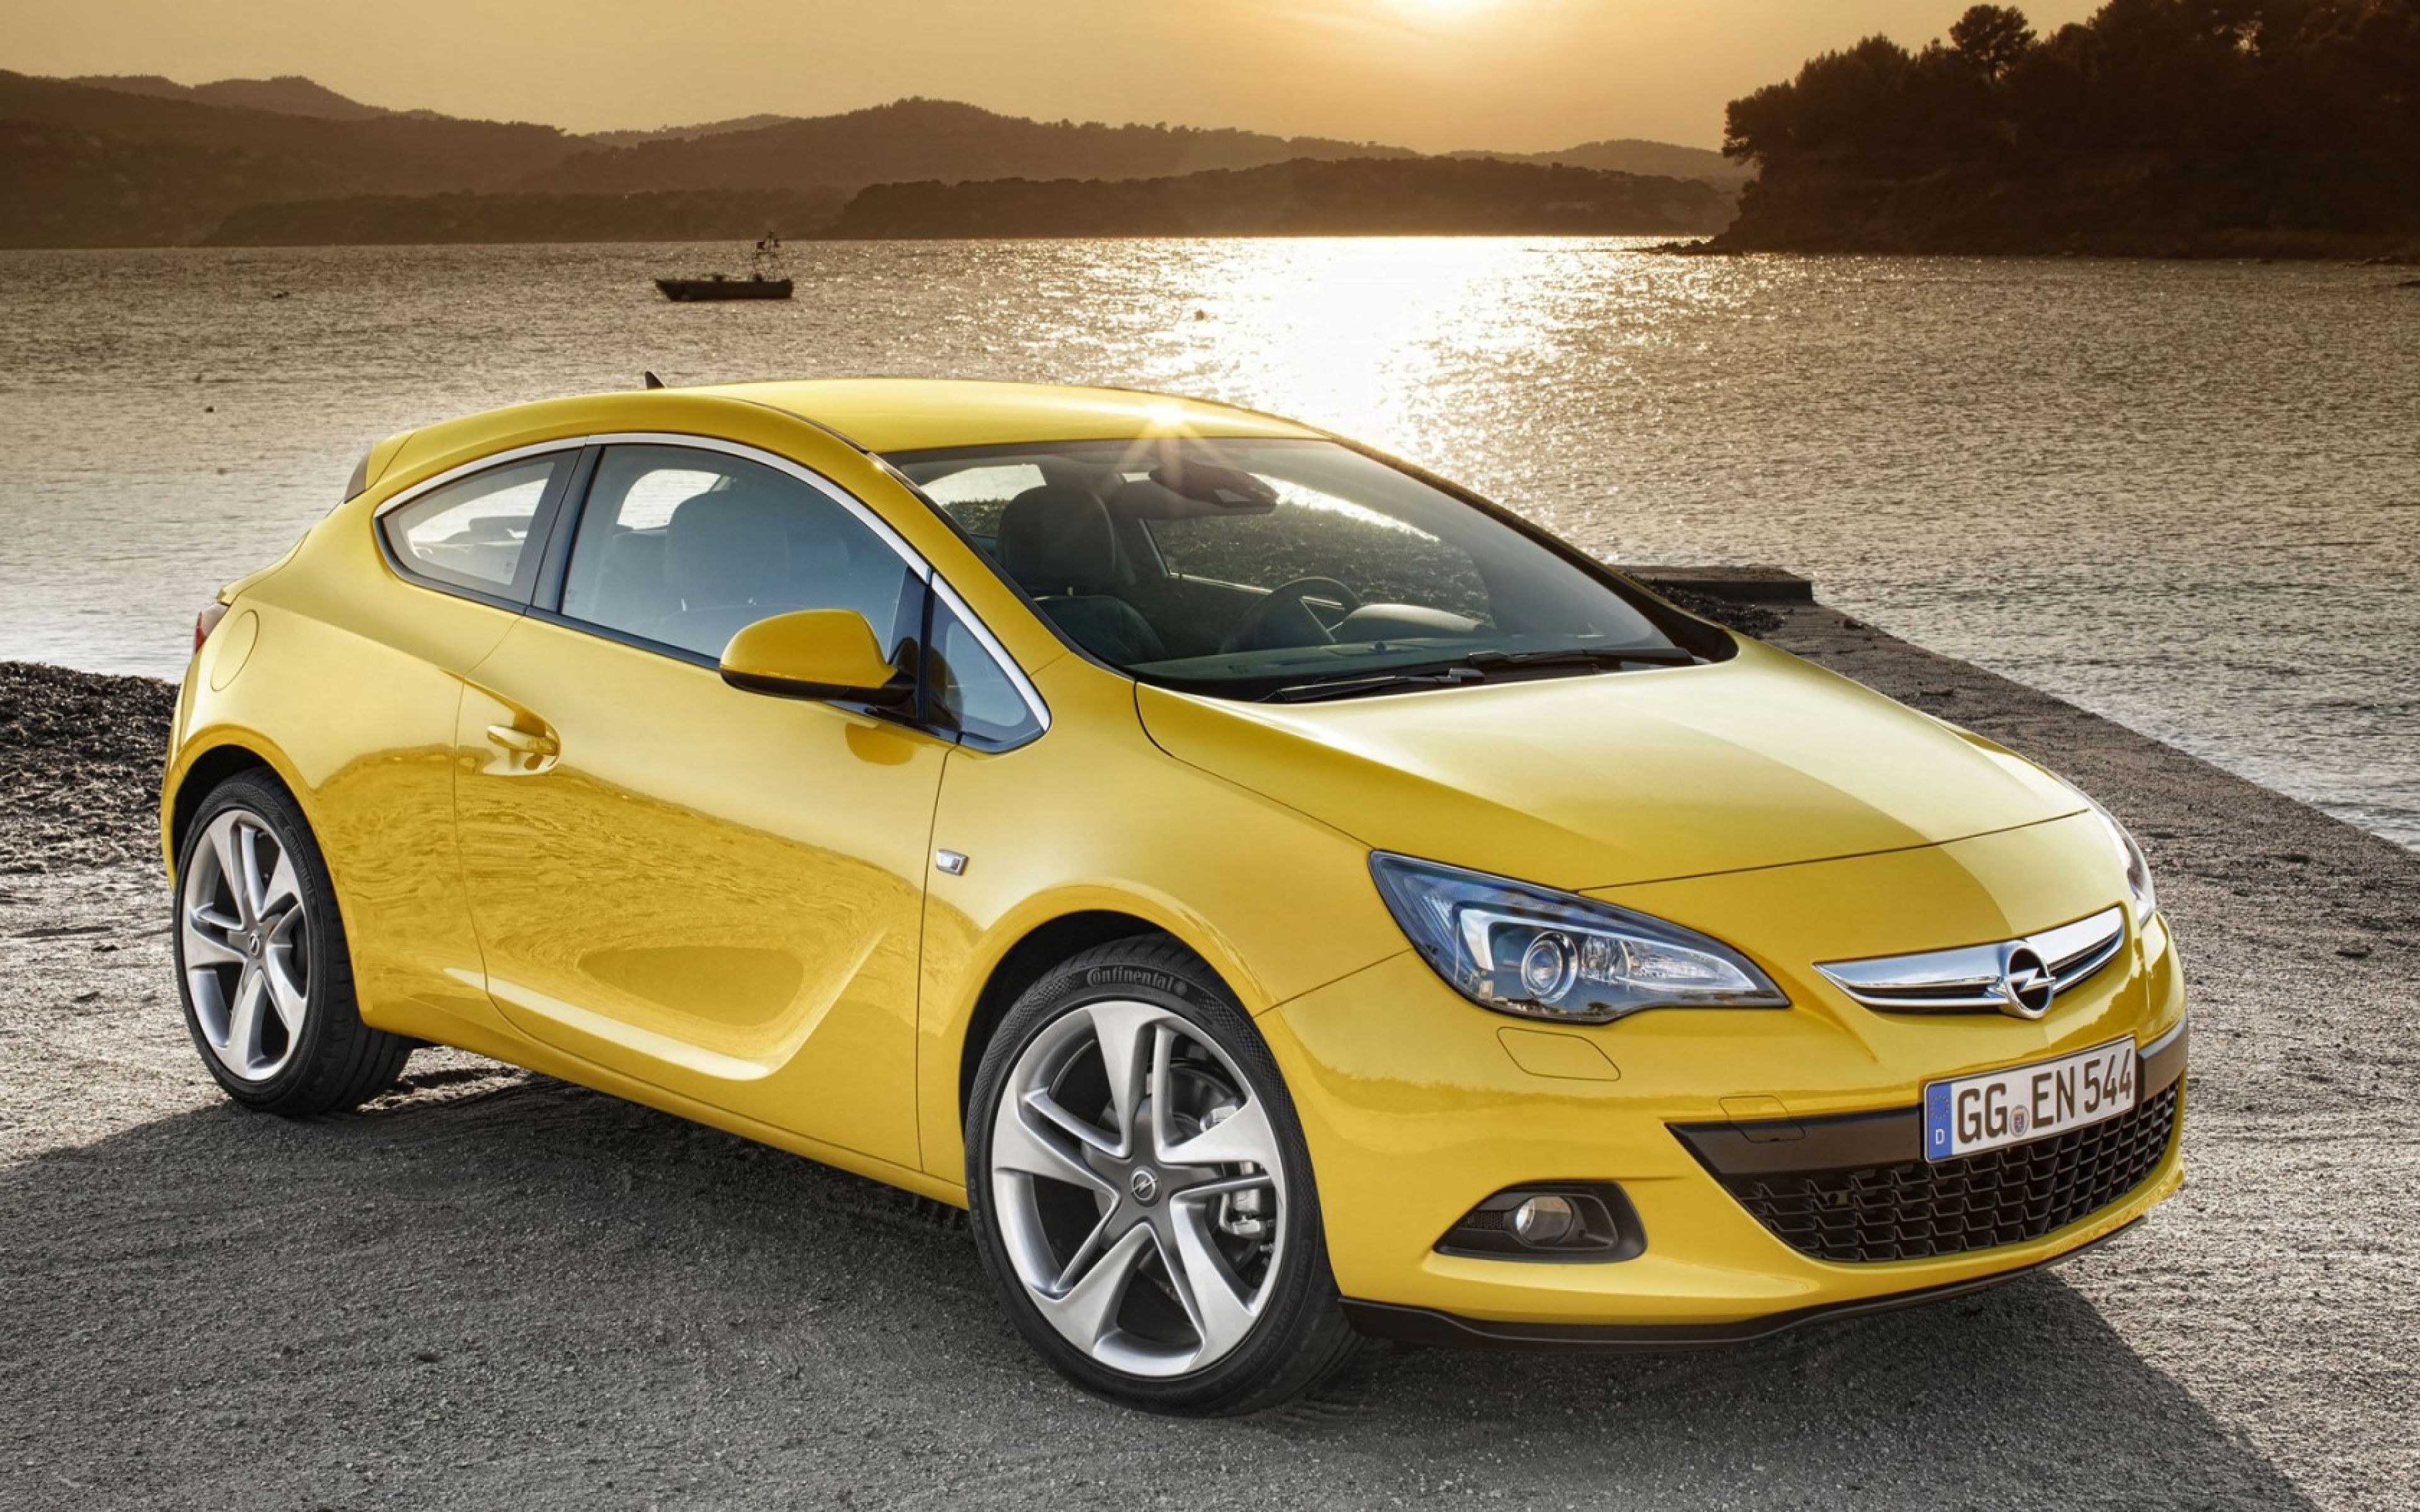 Download Wallpapers 3840x2400 Opel, Astra, Gtc, Yellow, Side view